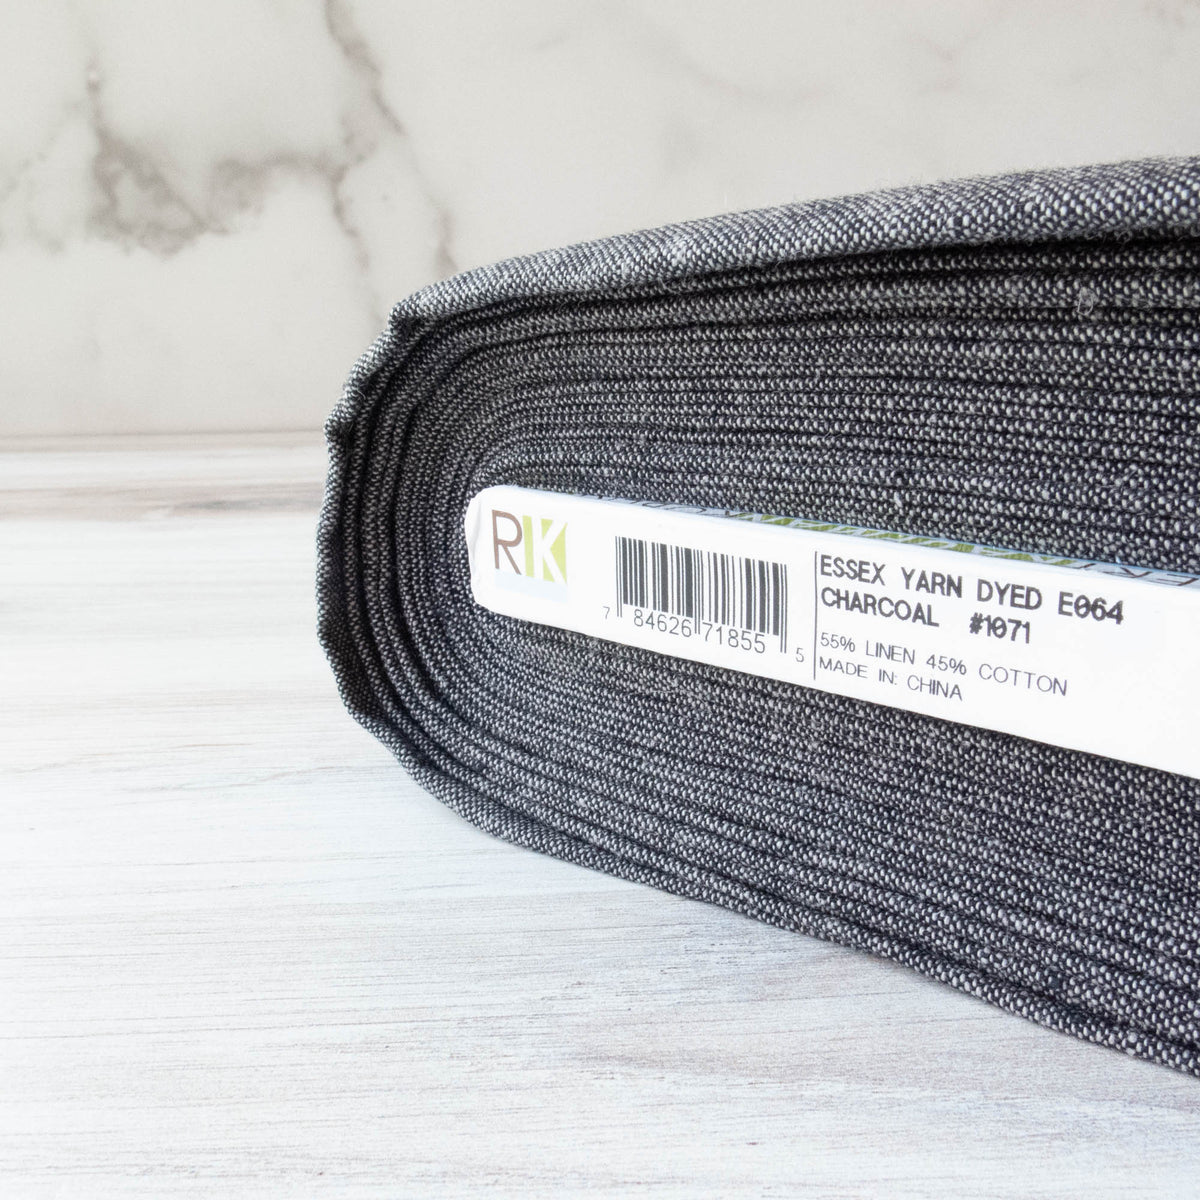 Essex Yarn Dyed - Charcoal (E064-1071) Fabric - Snuggly Monkey